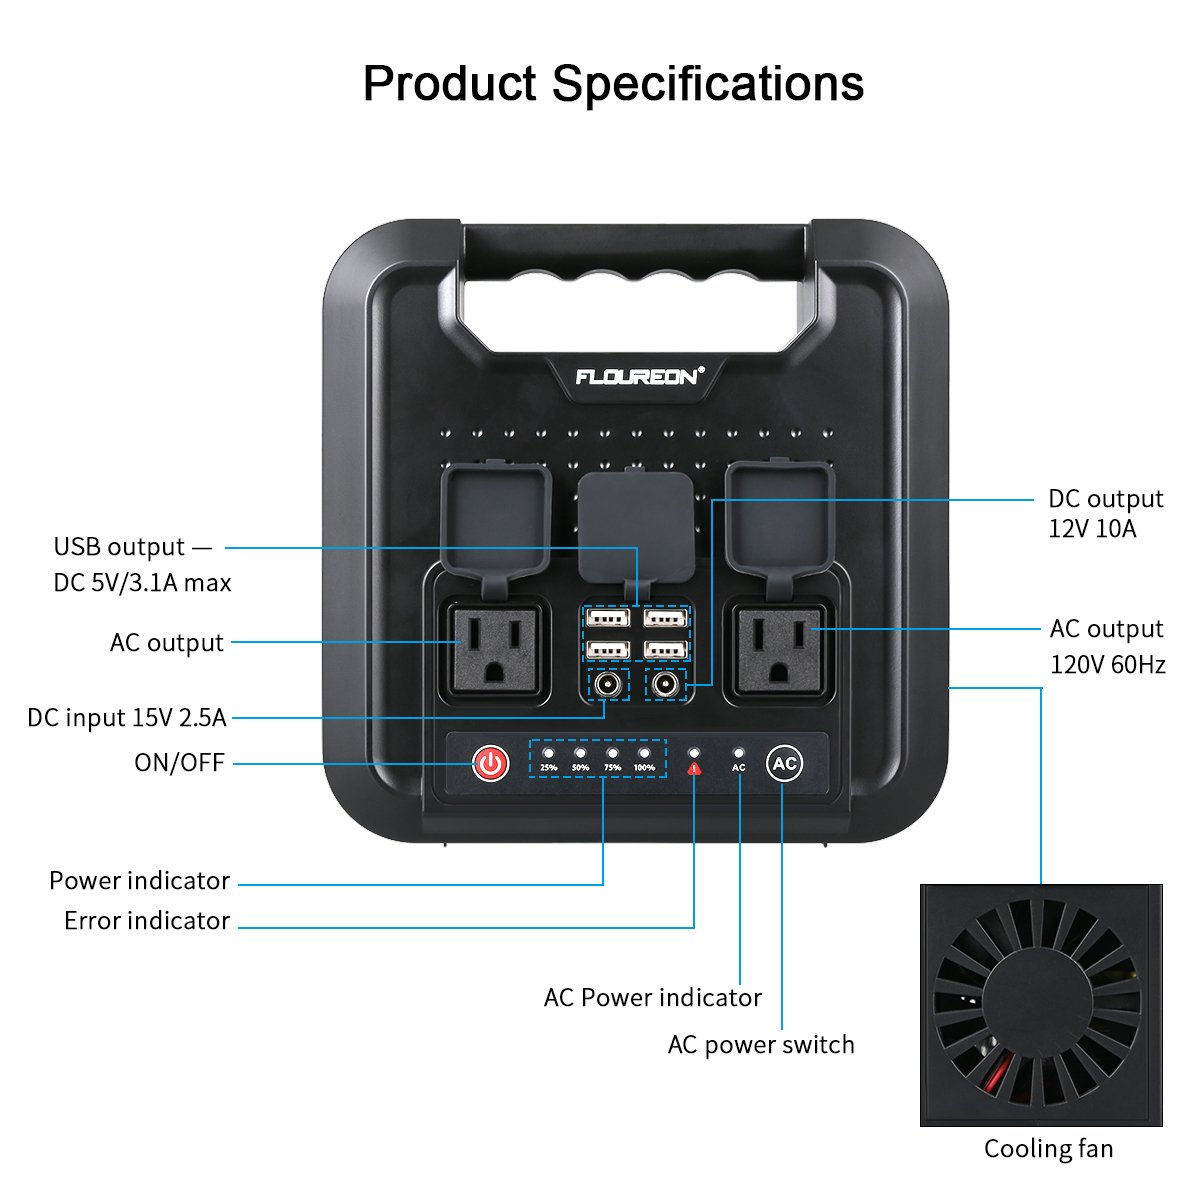 Unswitched 120vac 60 Hz Source B To Additional Units Maximum 18